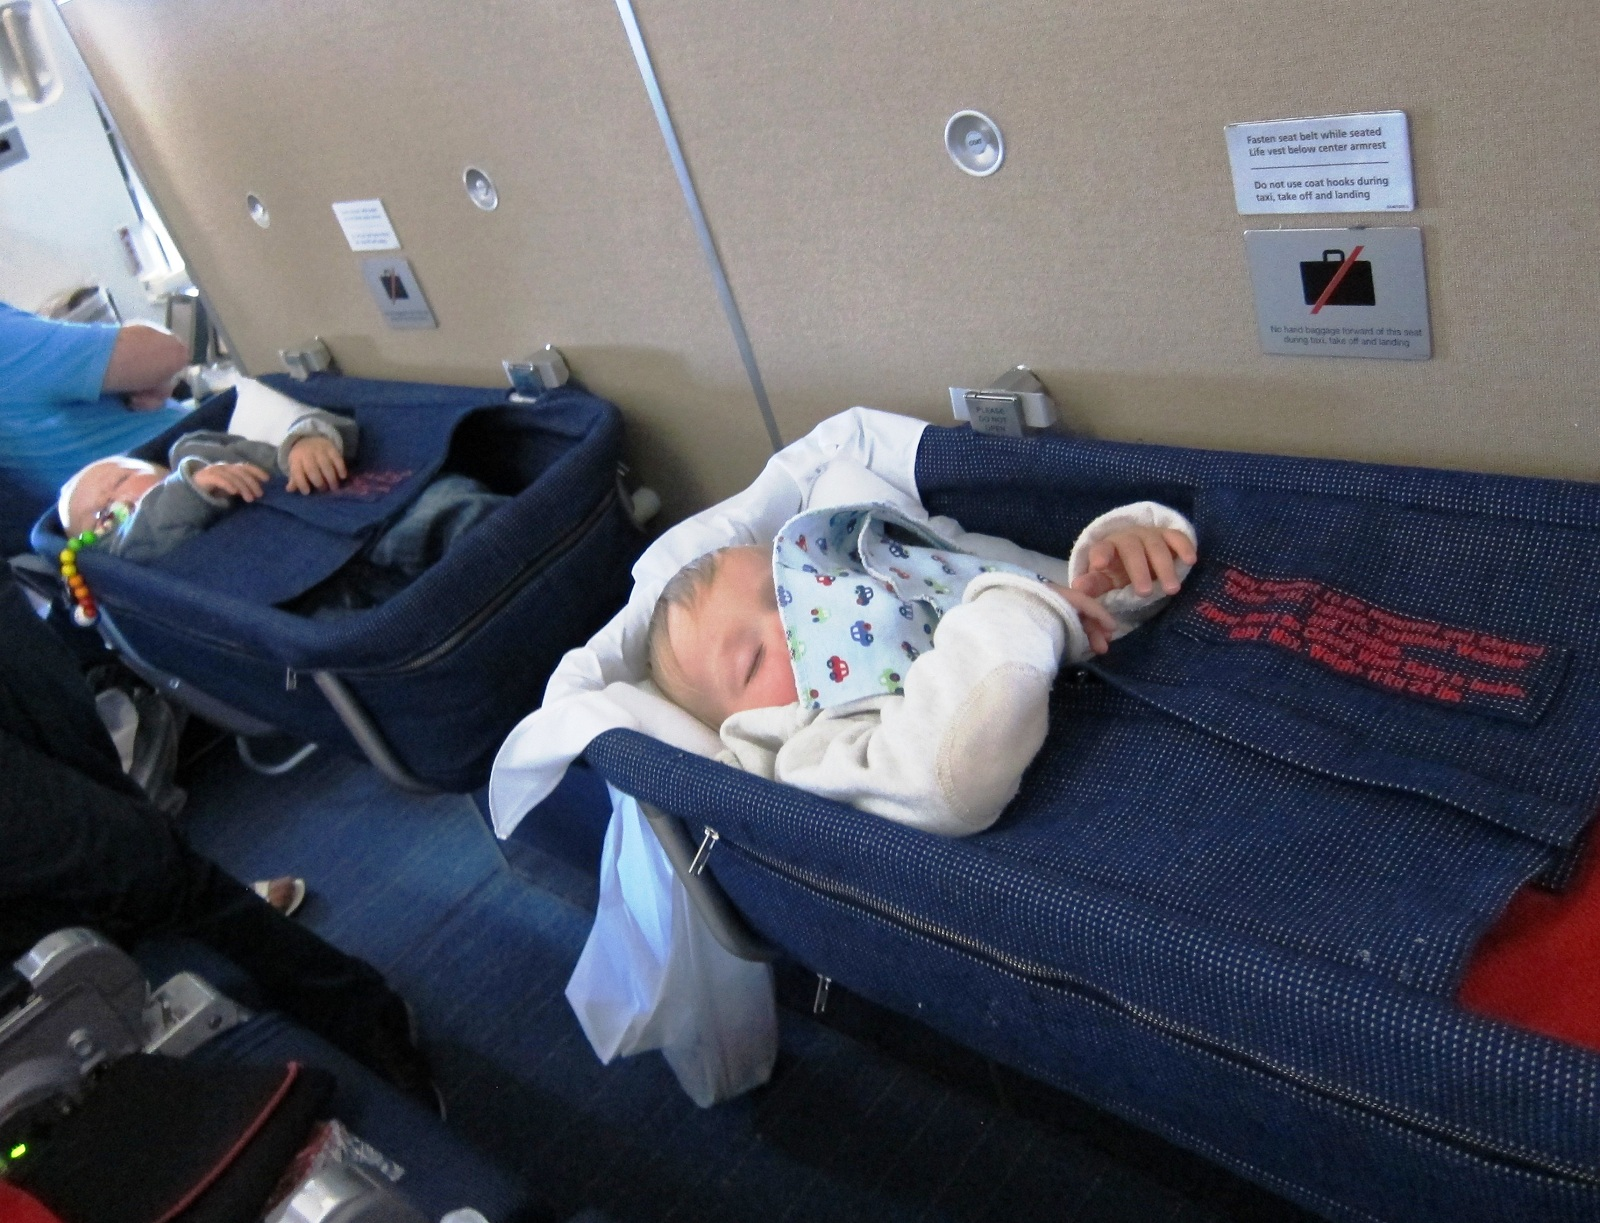 Baby in the Airplane Baby seats special